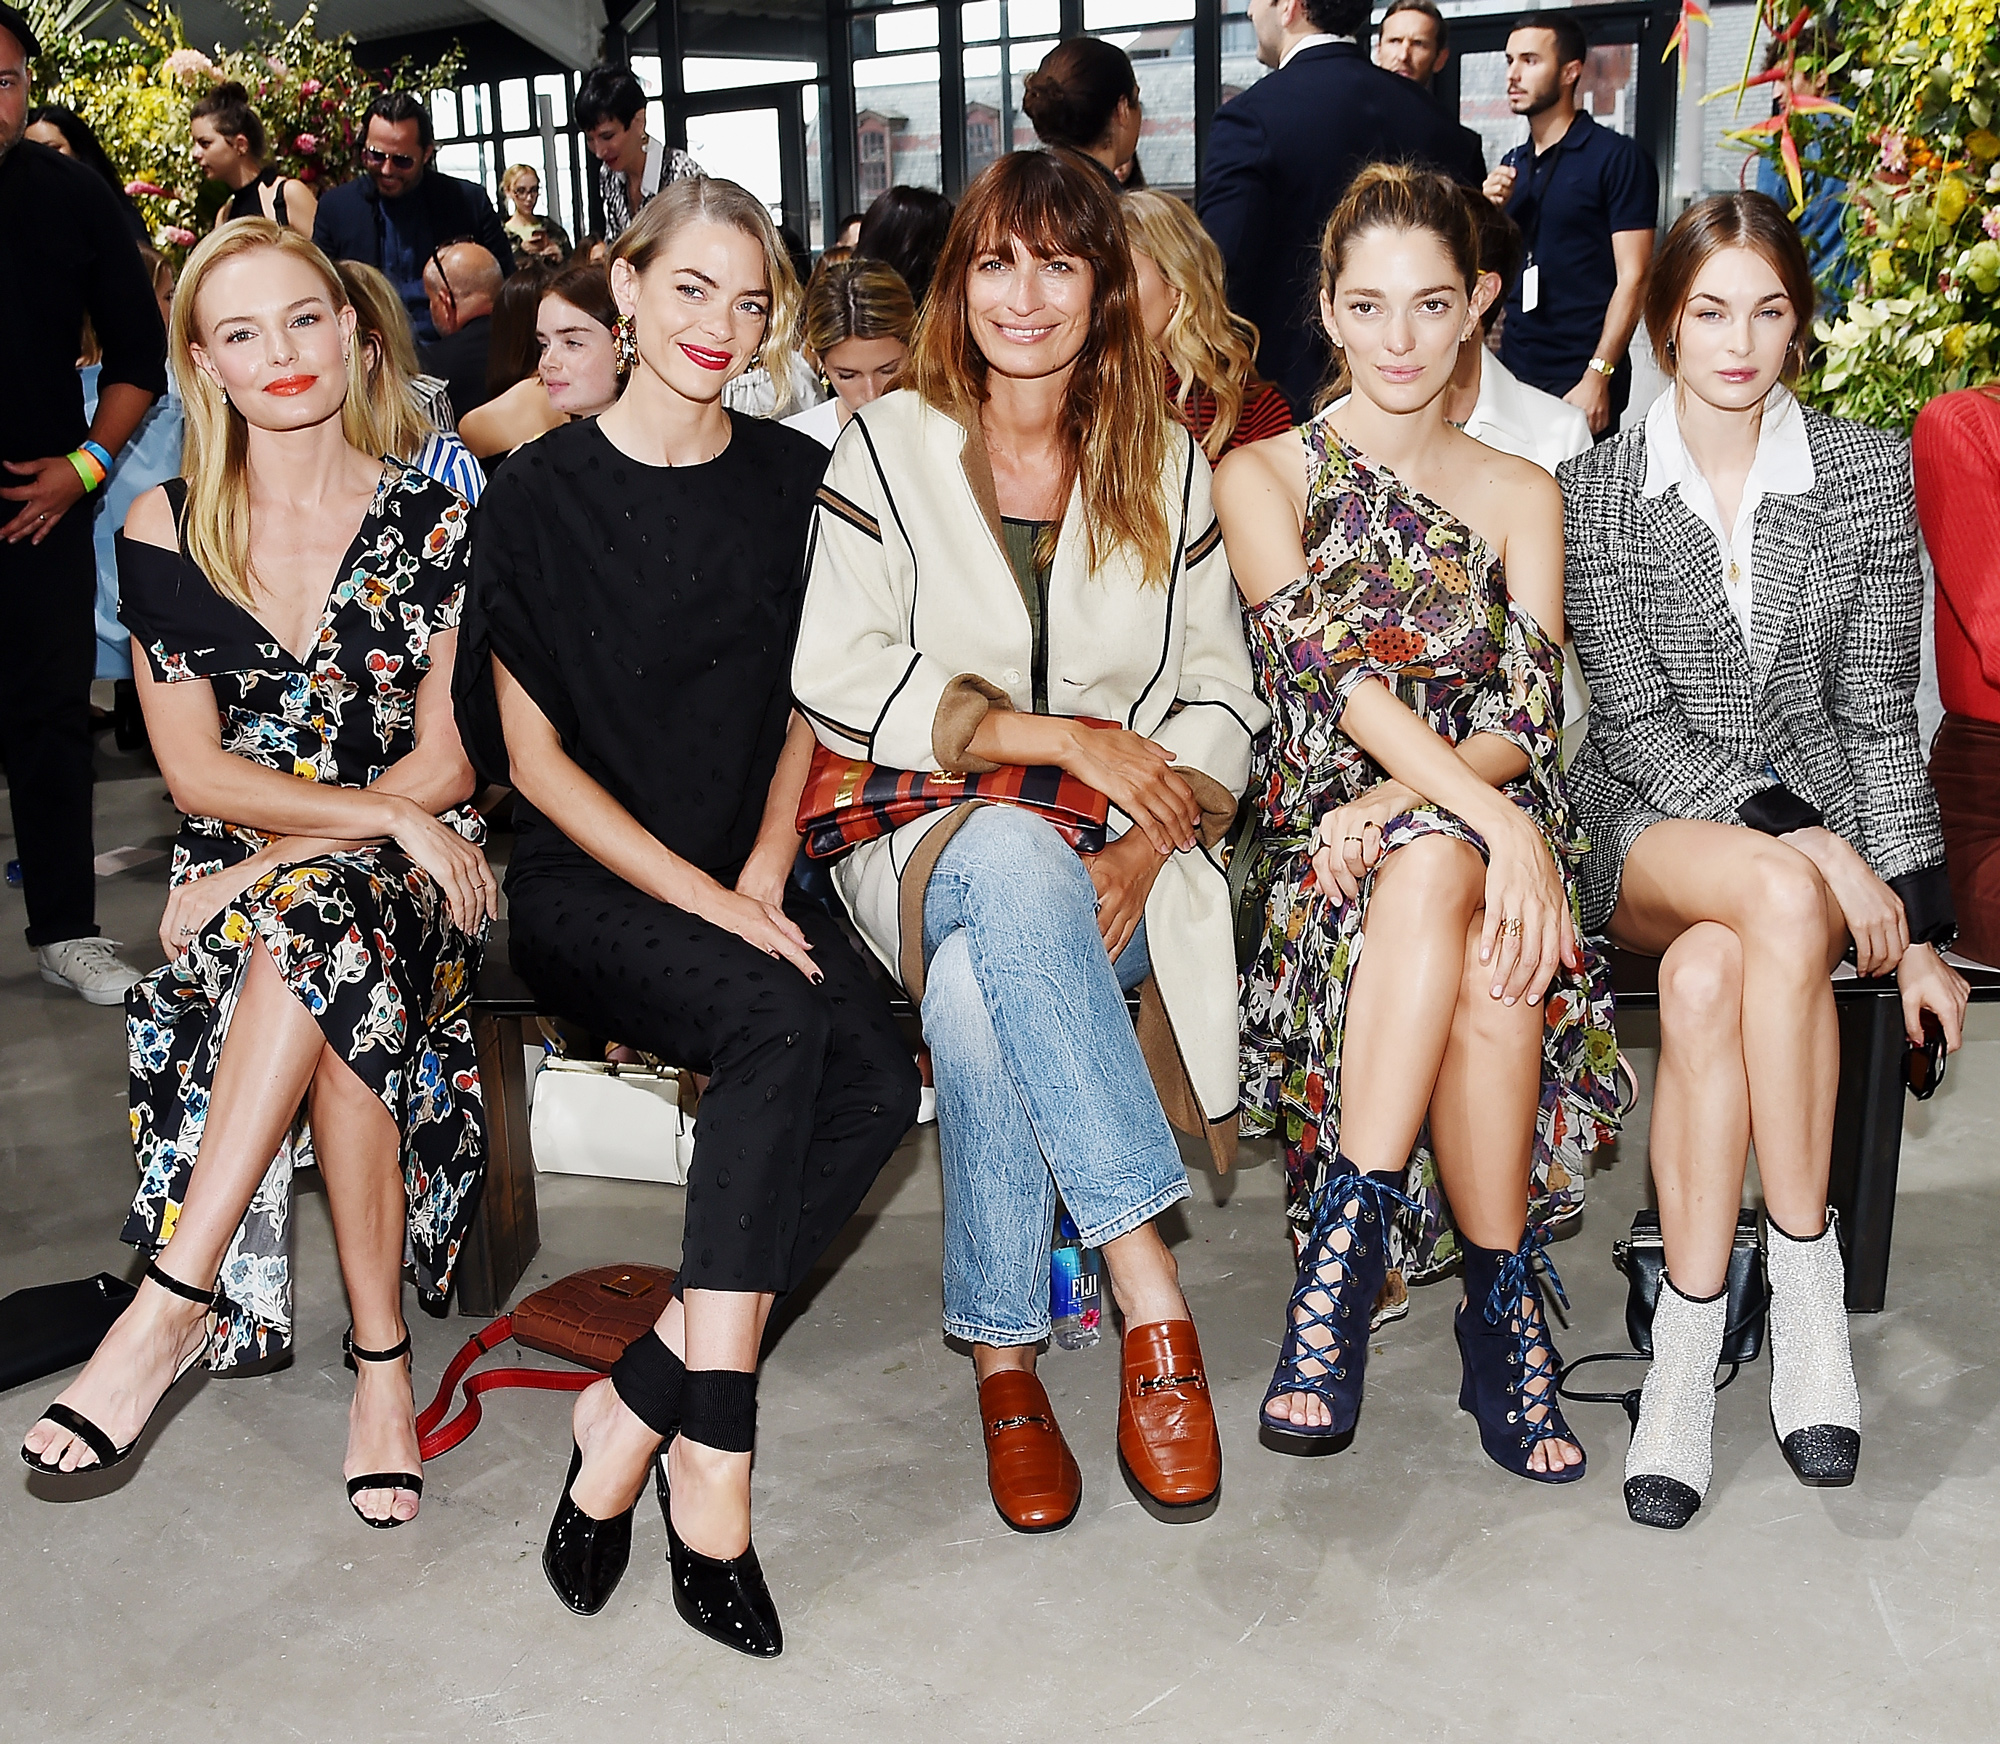 Kate Bosworth, Jaime King, Caroline de Maigret, Sofía Sanchez de Betak, and Laura Love